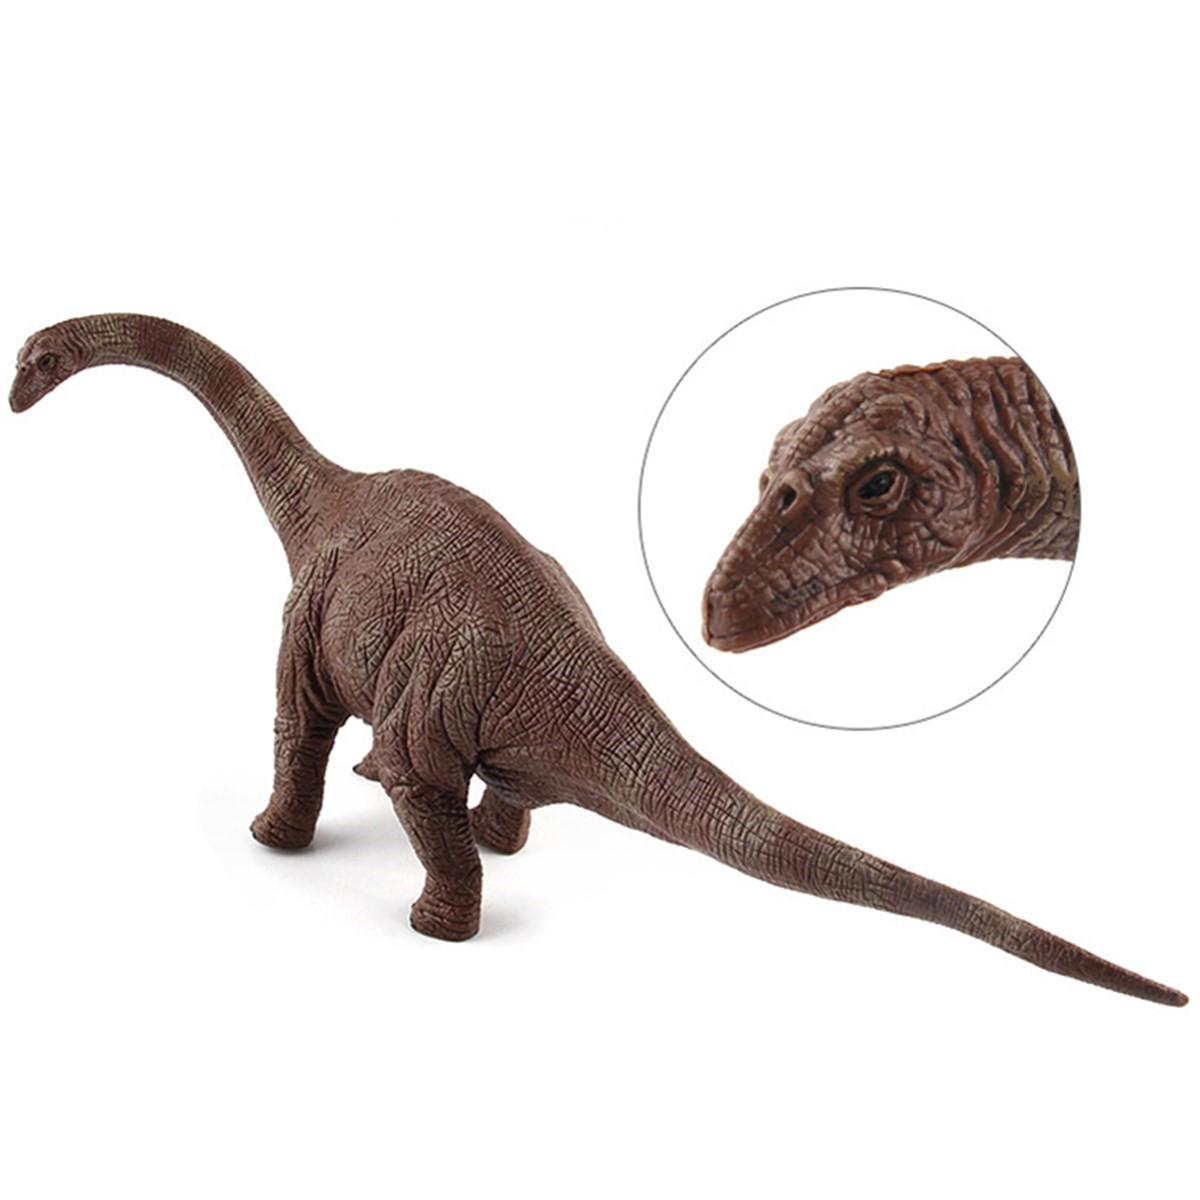 Grande Brachiosaurus Dinosaur Toy Realistic Diecast Model Solid Plastic Gift To Kids - 6